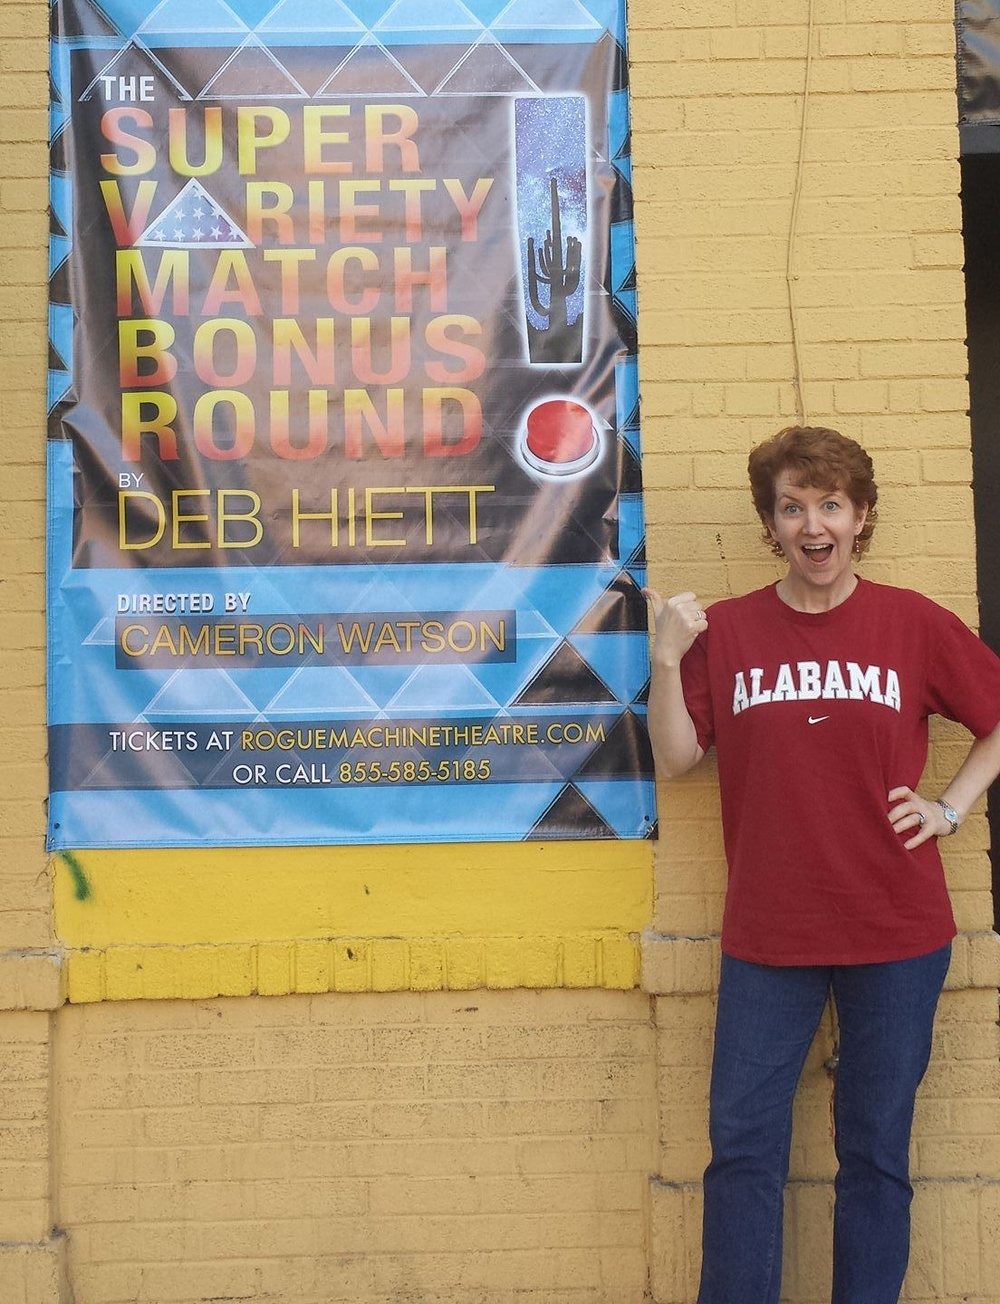 The Alabama shirt is unrelated to the show -- we were playing LSU that day, and even though I was at the theater for tech, I have to wear my good luck game-day attire....